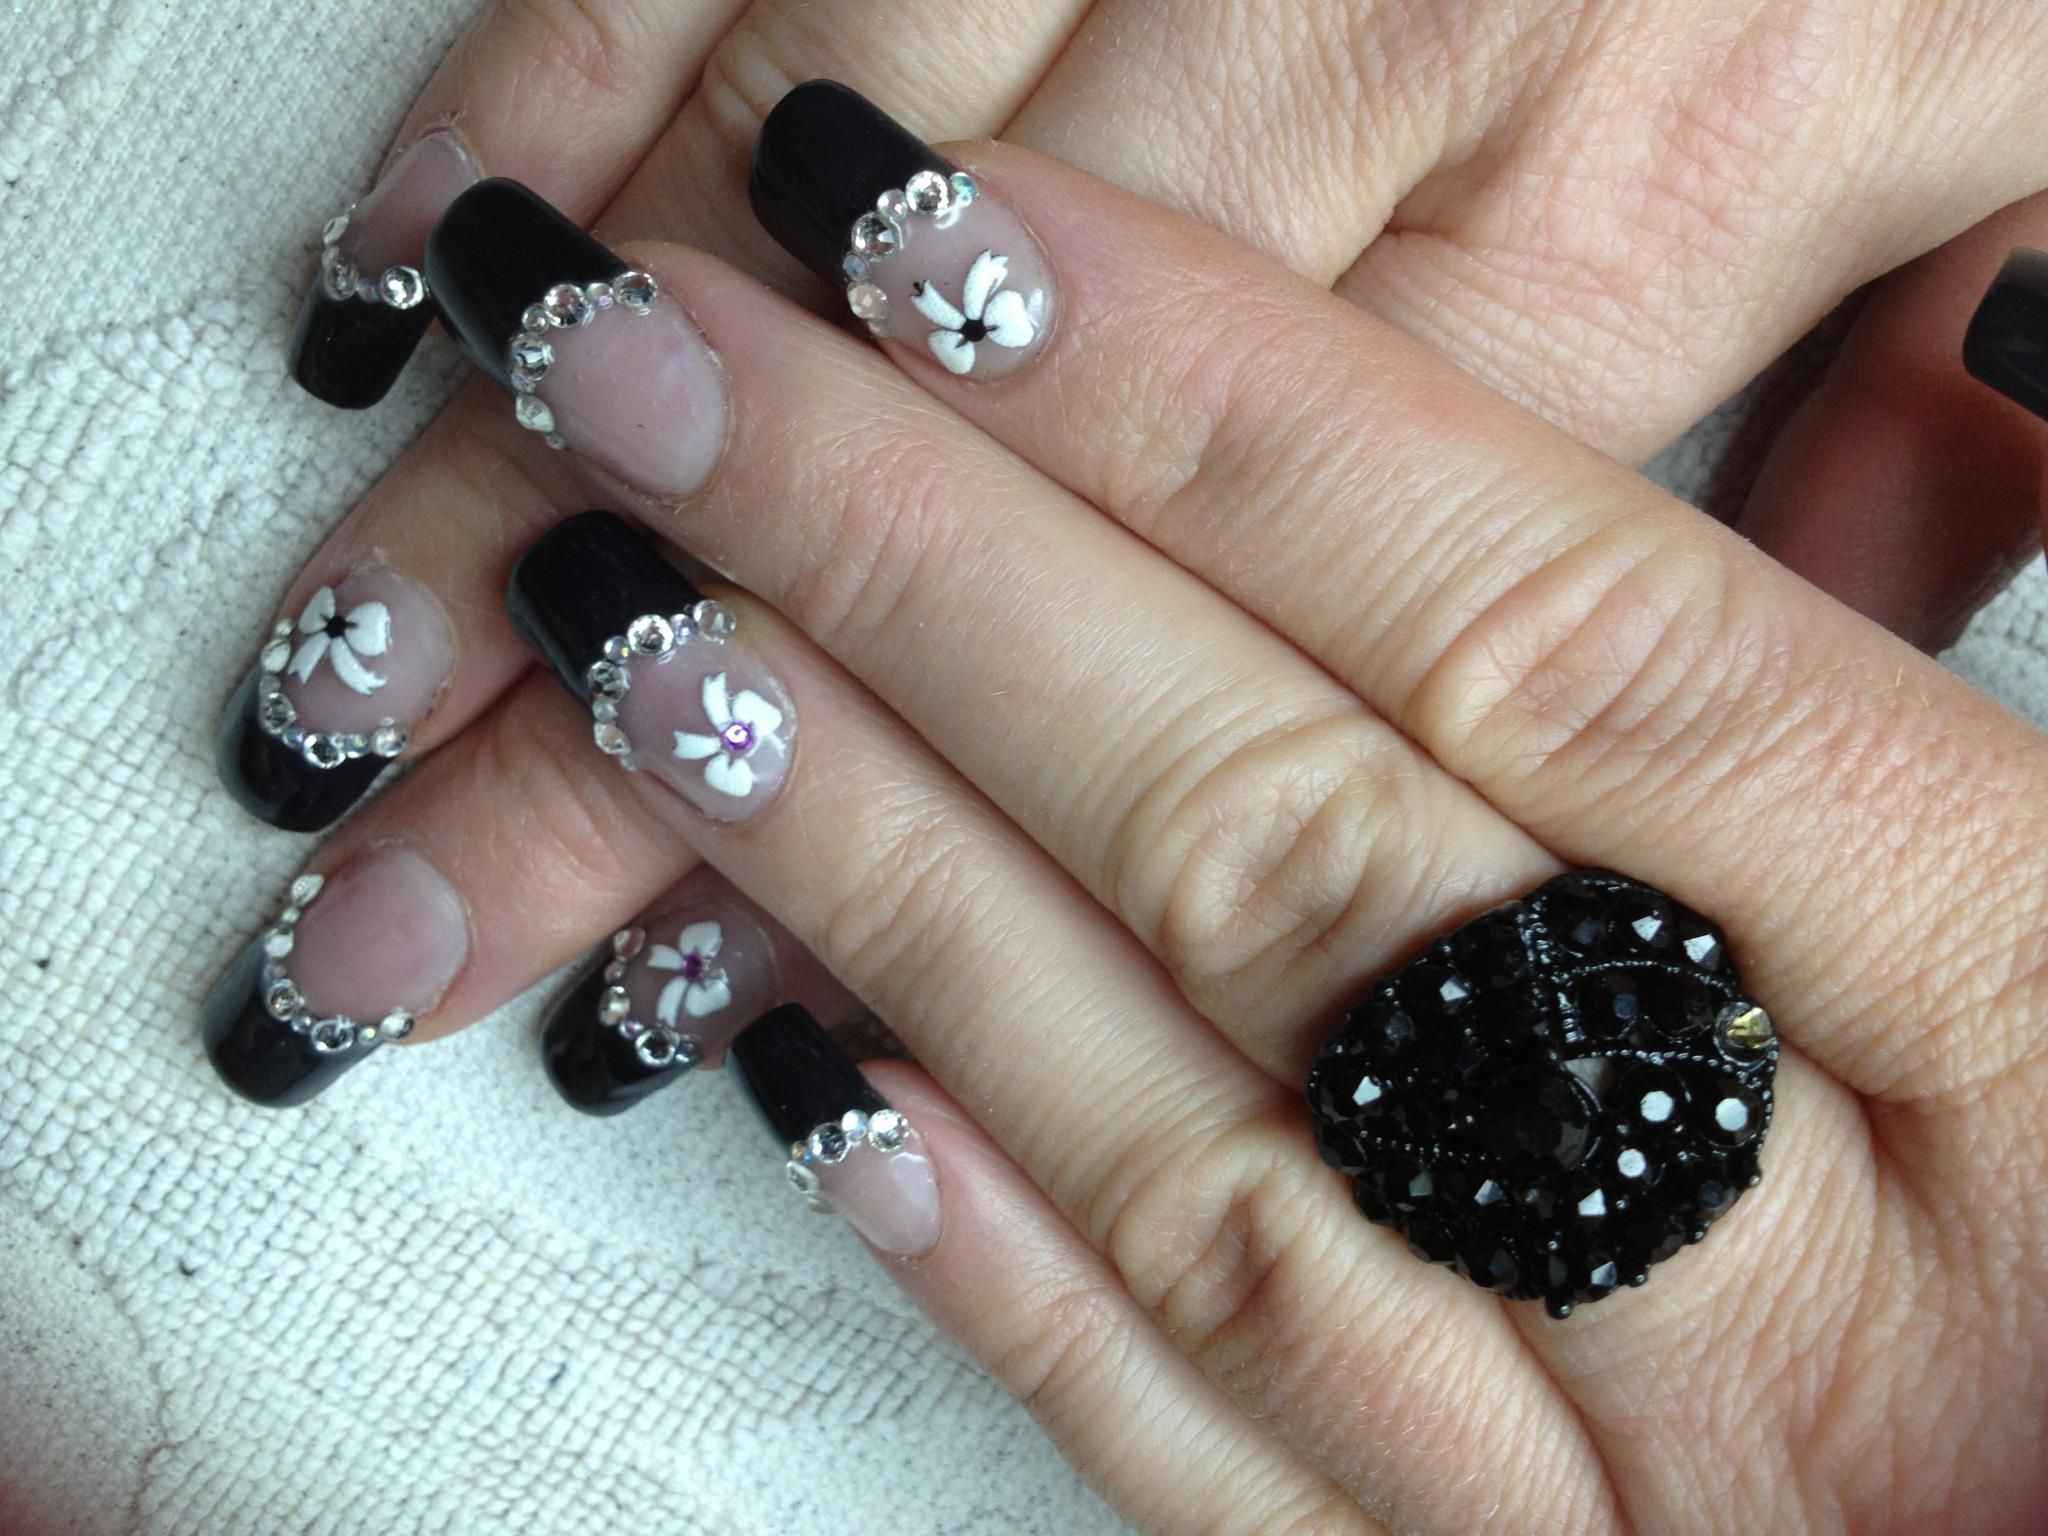 classic black tip with white flowers and rhinestones   Nail art ...